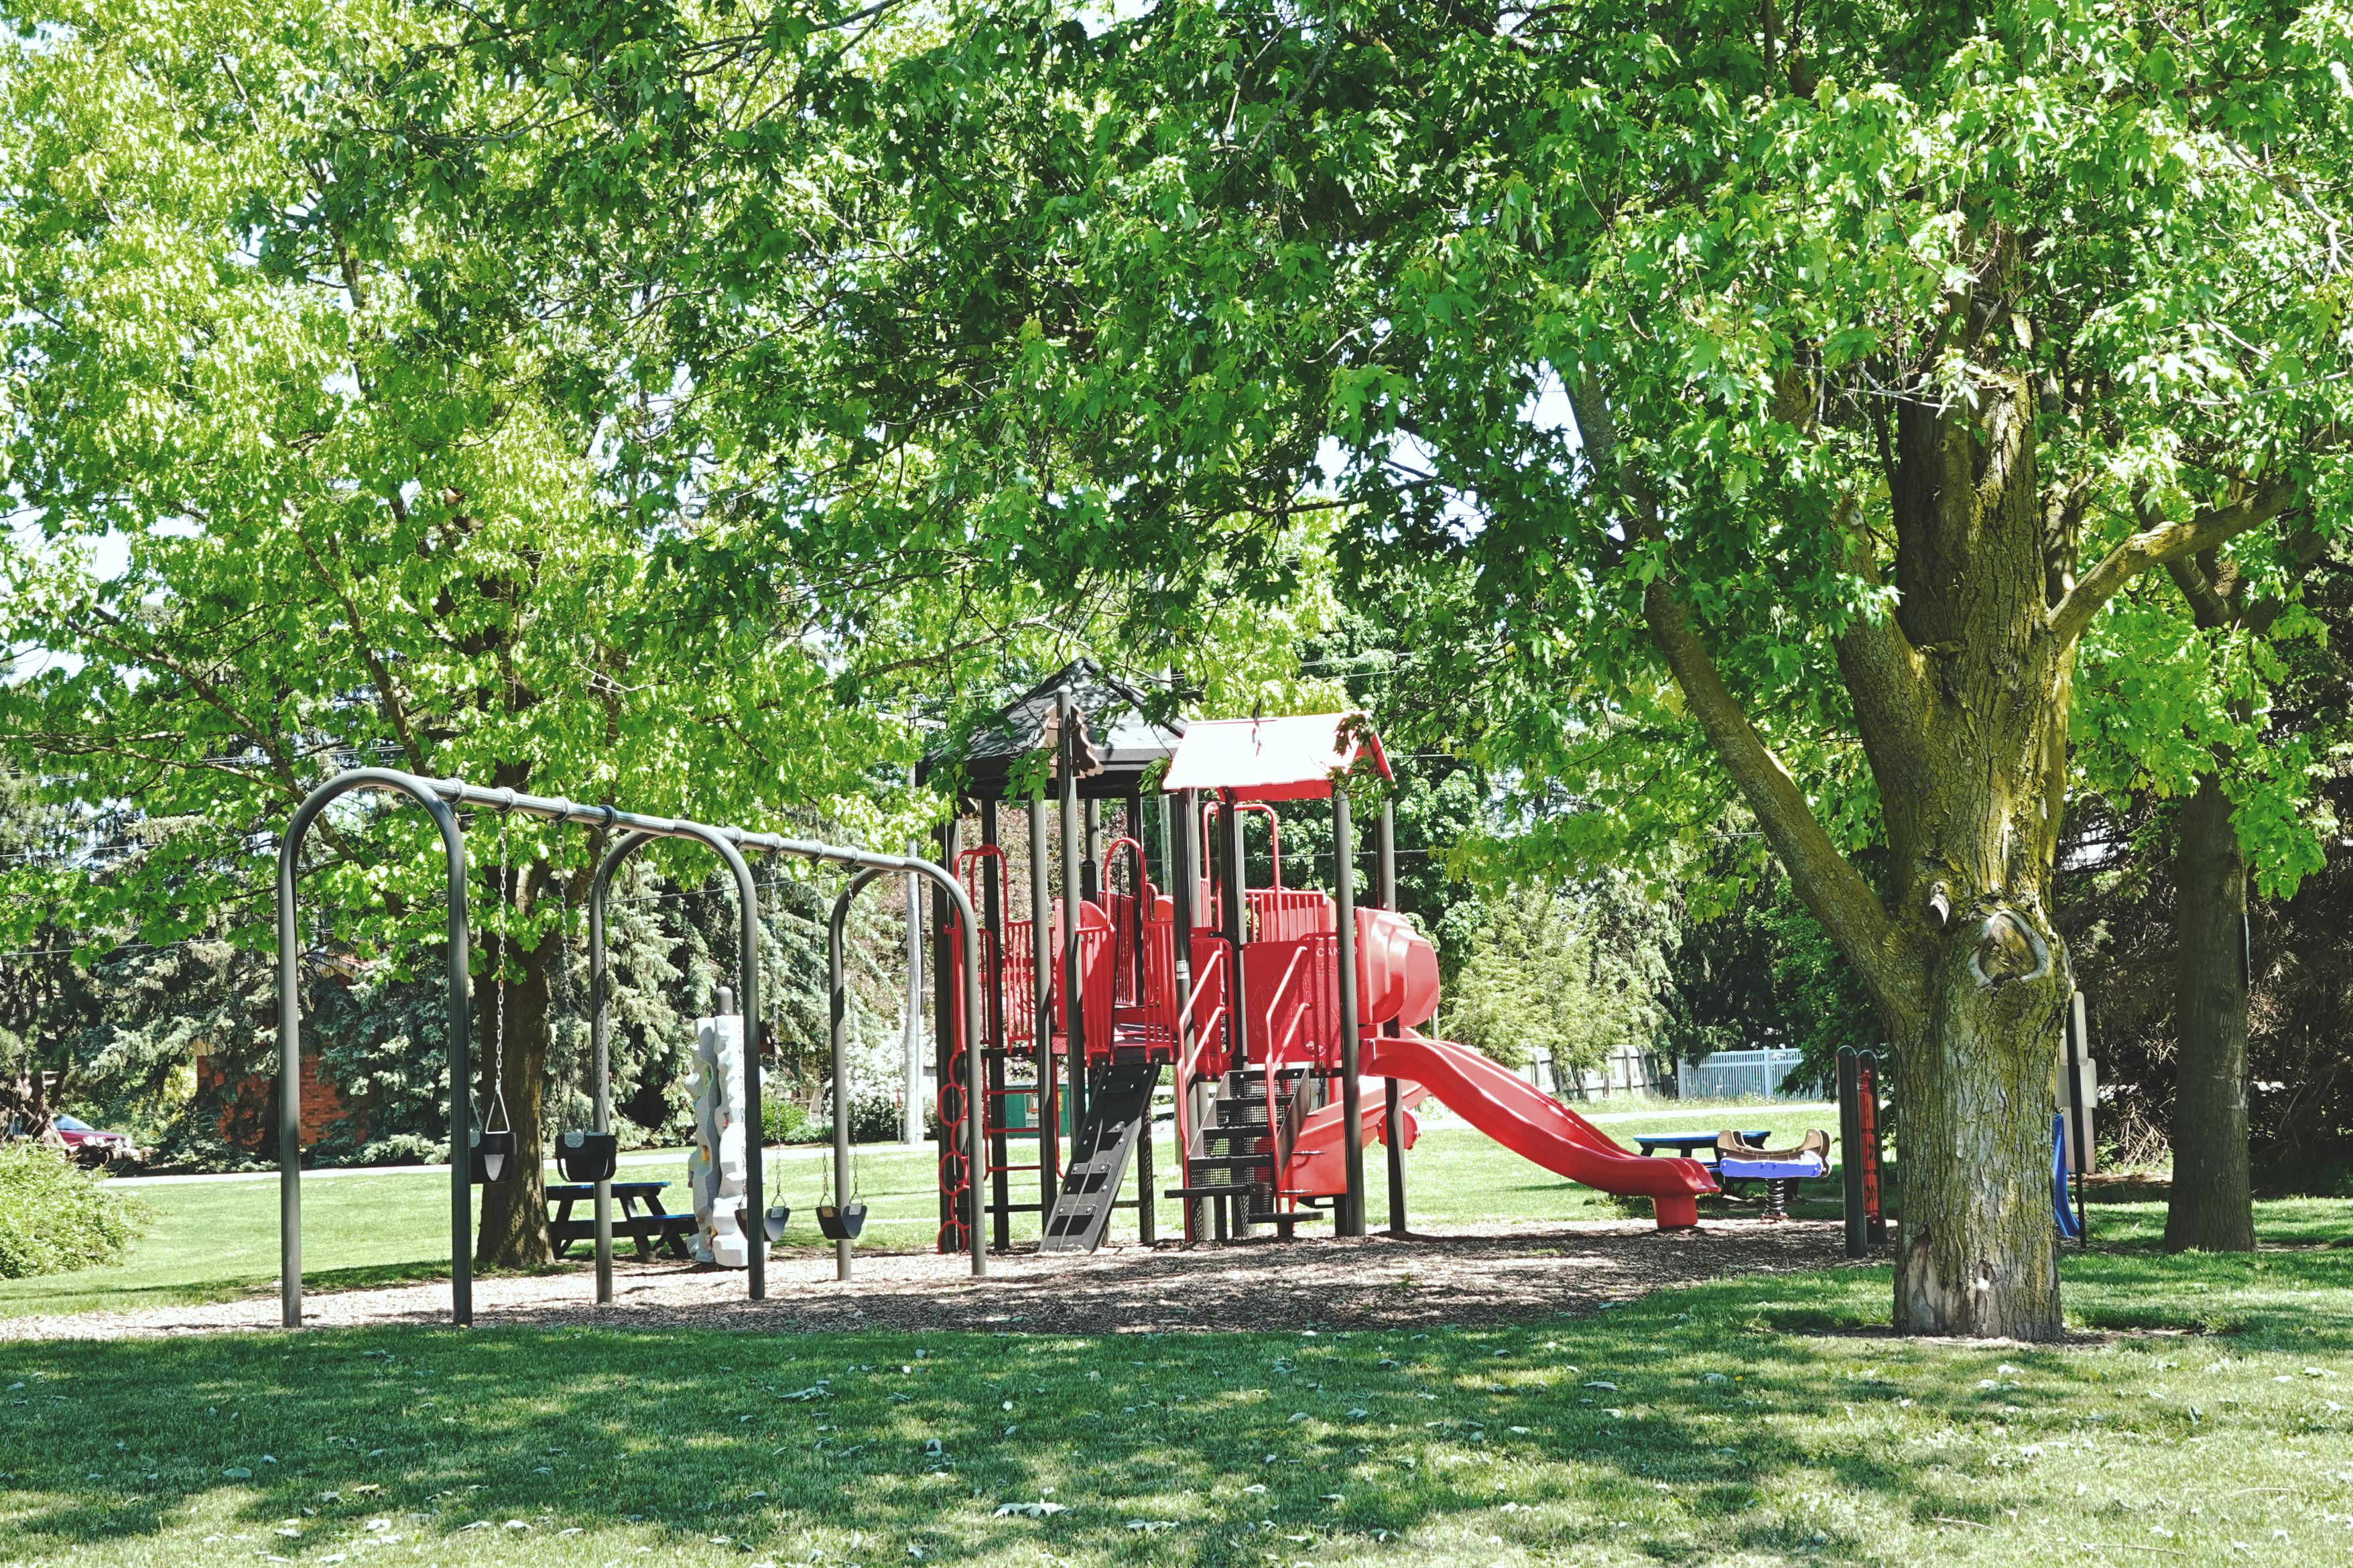 CMMC: Playground and Crops